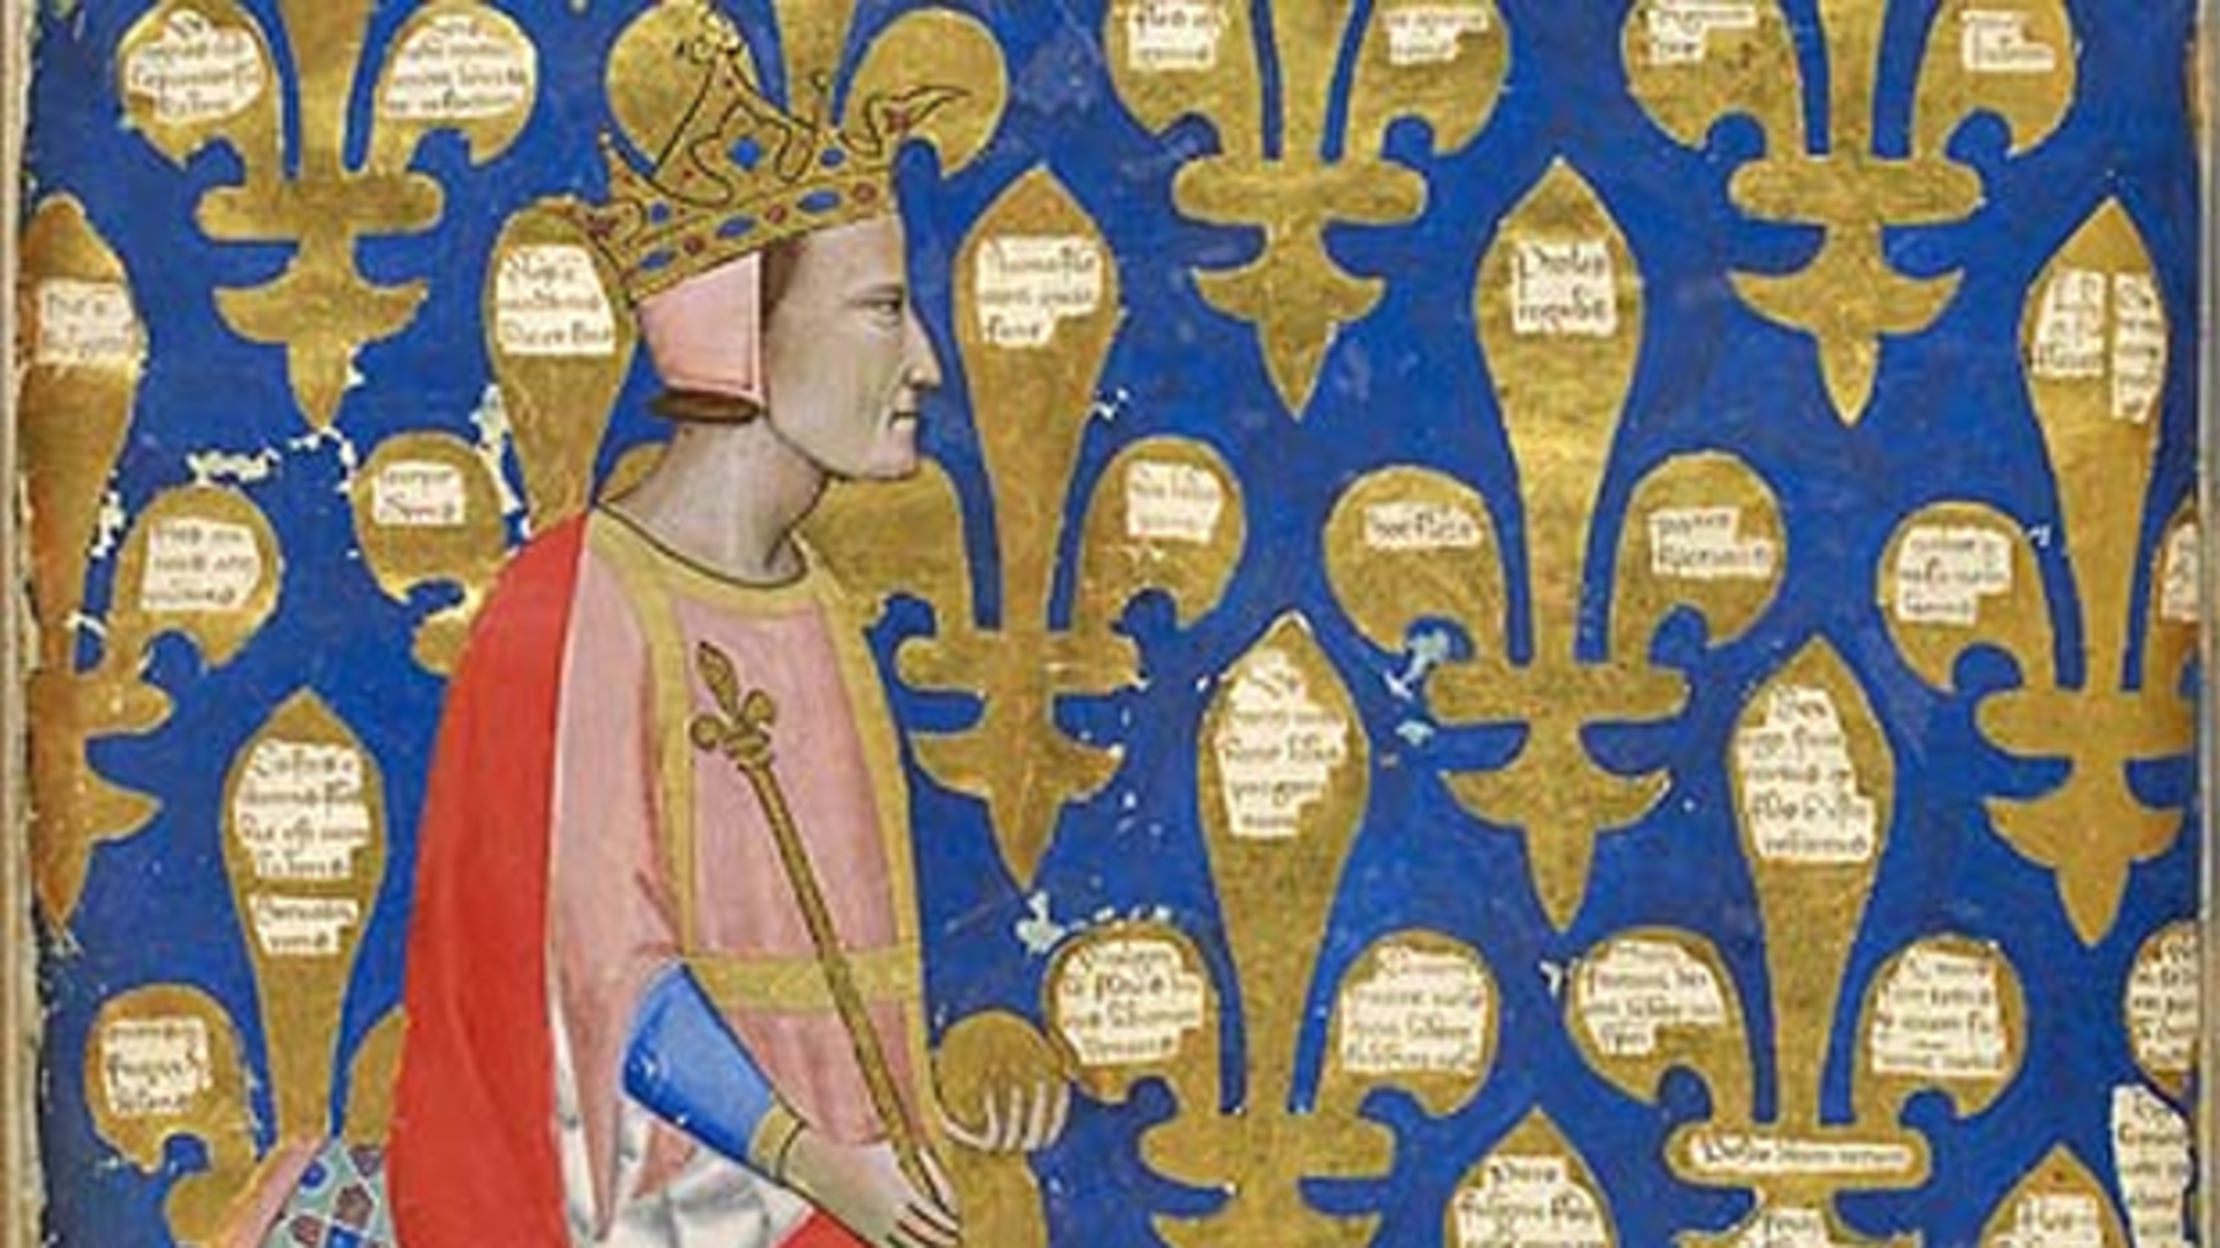 Timeless (and Terrible) Advice From the Middle Ages